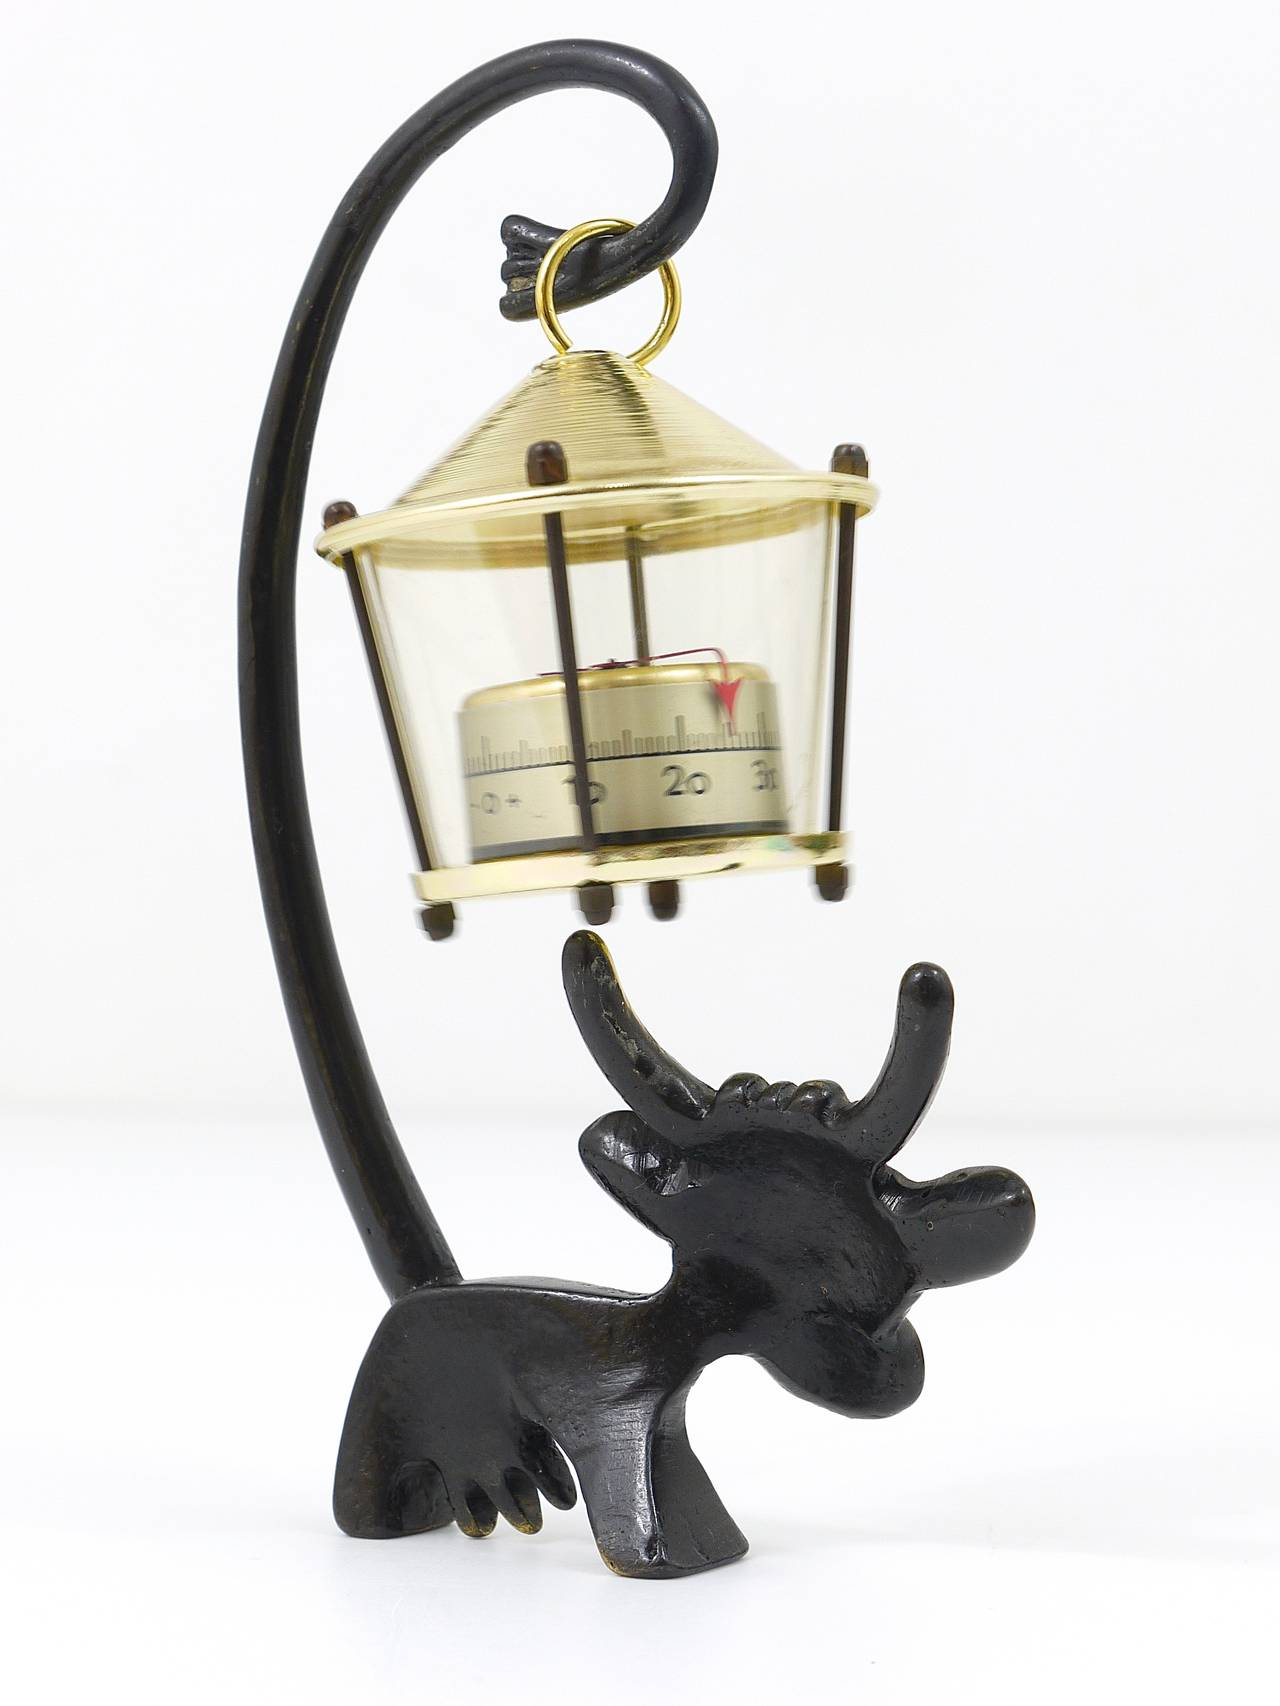 Walter Bosse Cow Figurine with Thermometer by Hertha Baller, Austria, 1950s For Sale 1